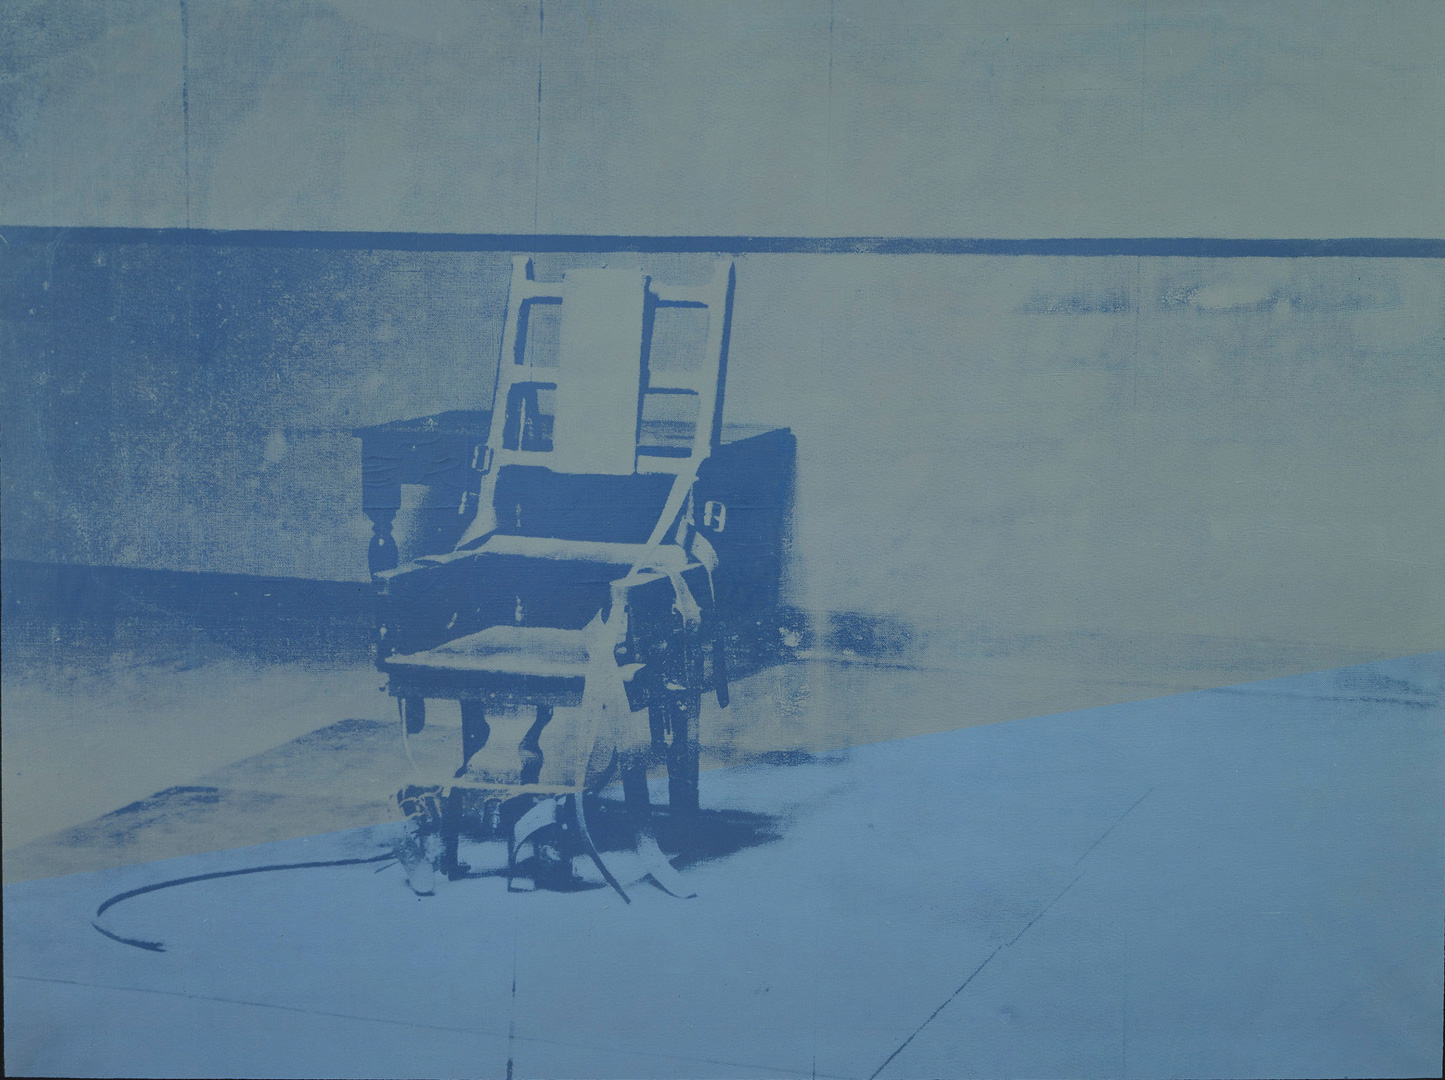 Electric chair andy warhol - Big Electric Chair The Andy Warhol